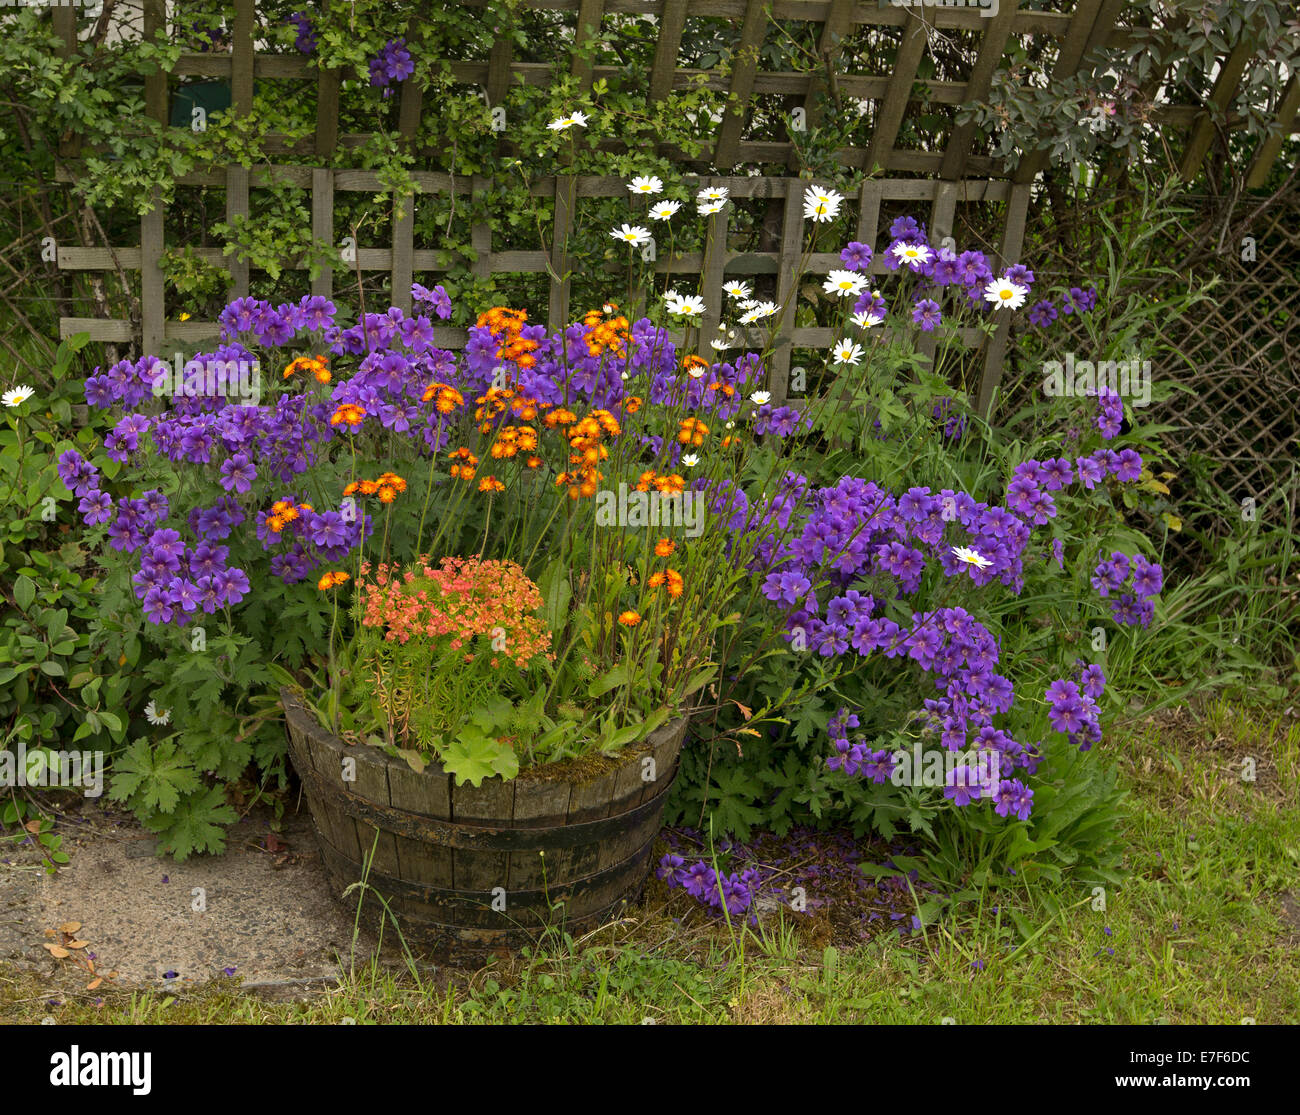 Masses of bright purple orange and white flowers of perennial masses of bright purple orange and white flowers of perennial plants british wildflowers flowering in old wine cask tub in scotland mightylinksfo